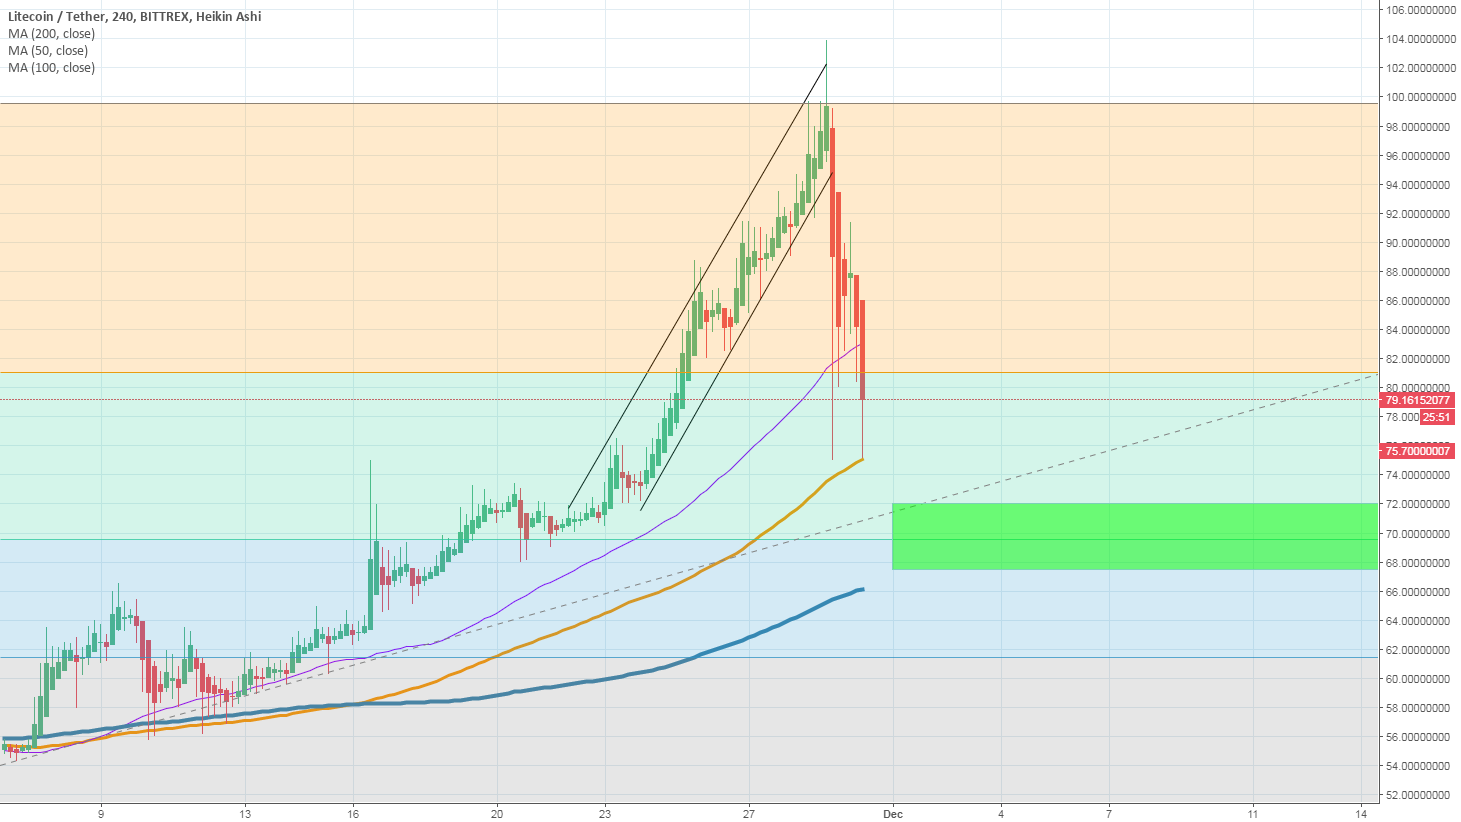 Litecoin moving to buy zone